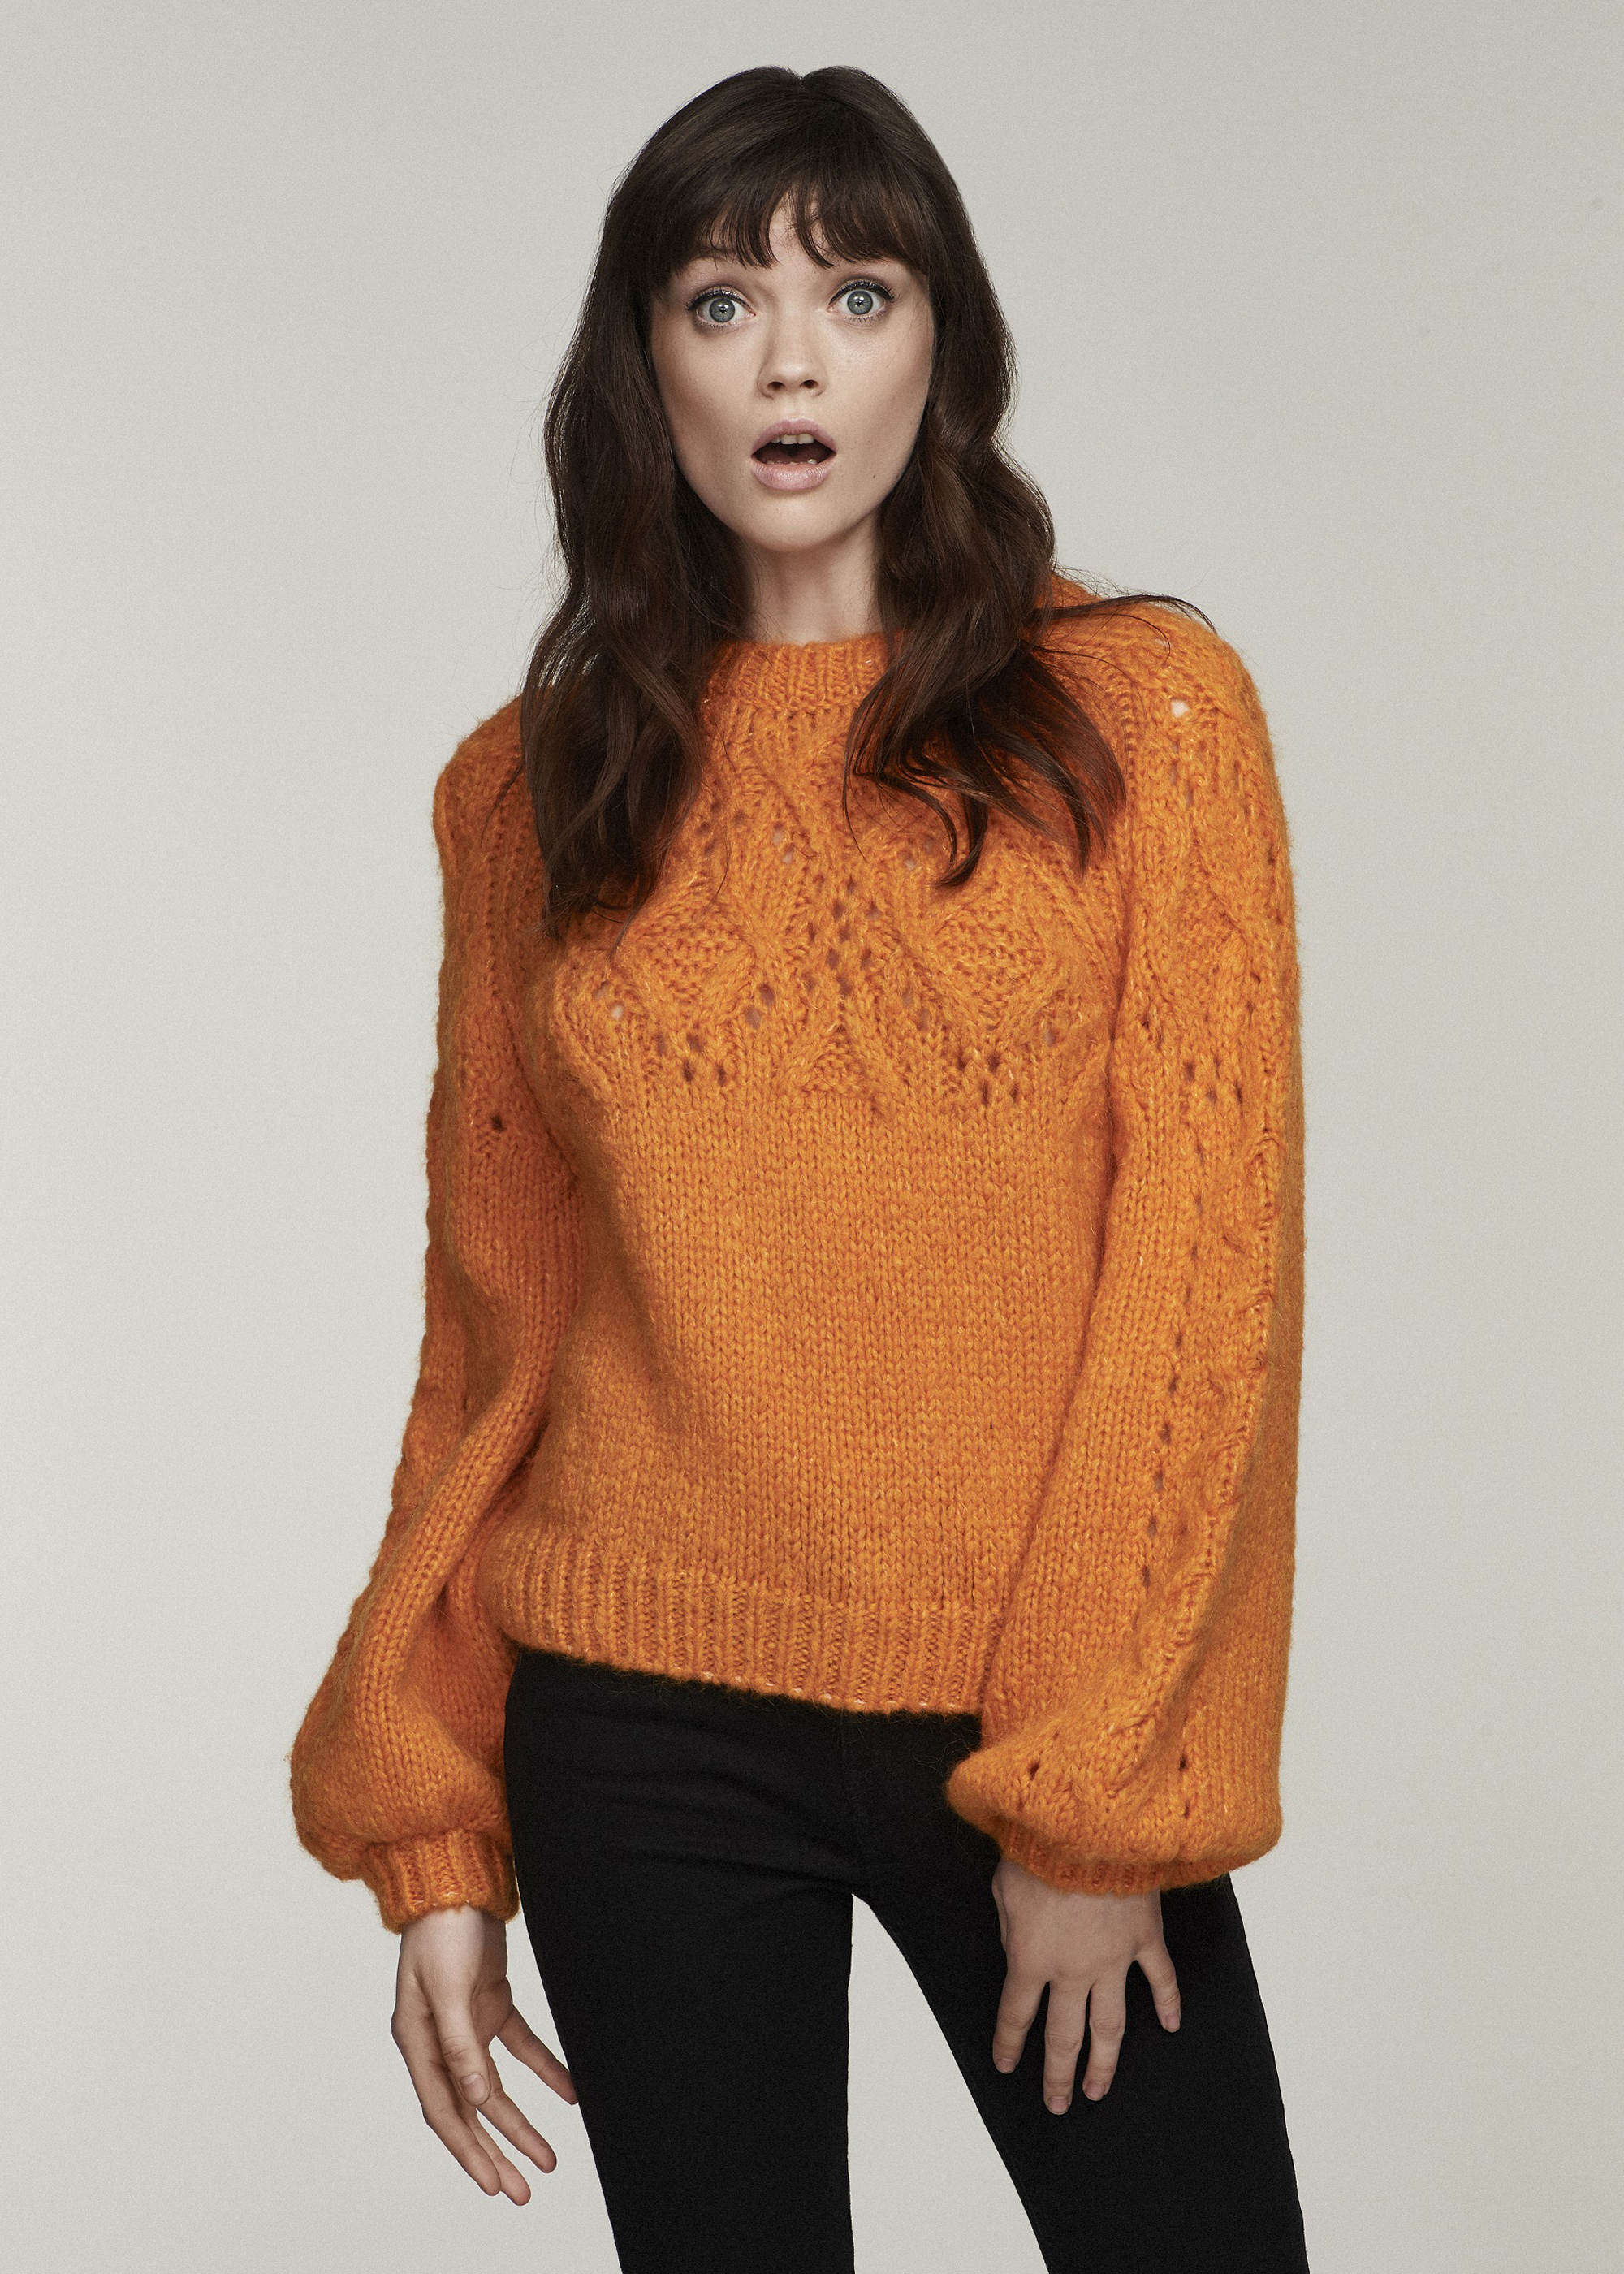 model wearing H! by Henry Holland Orange Chunky Cable Knit Jumper